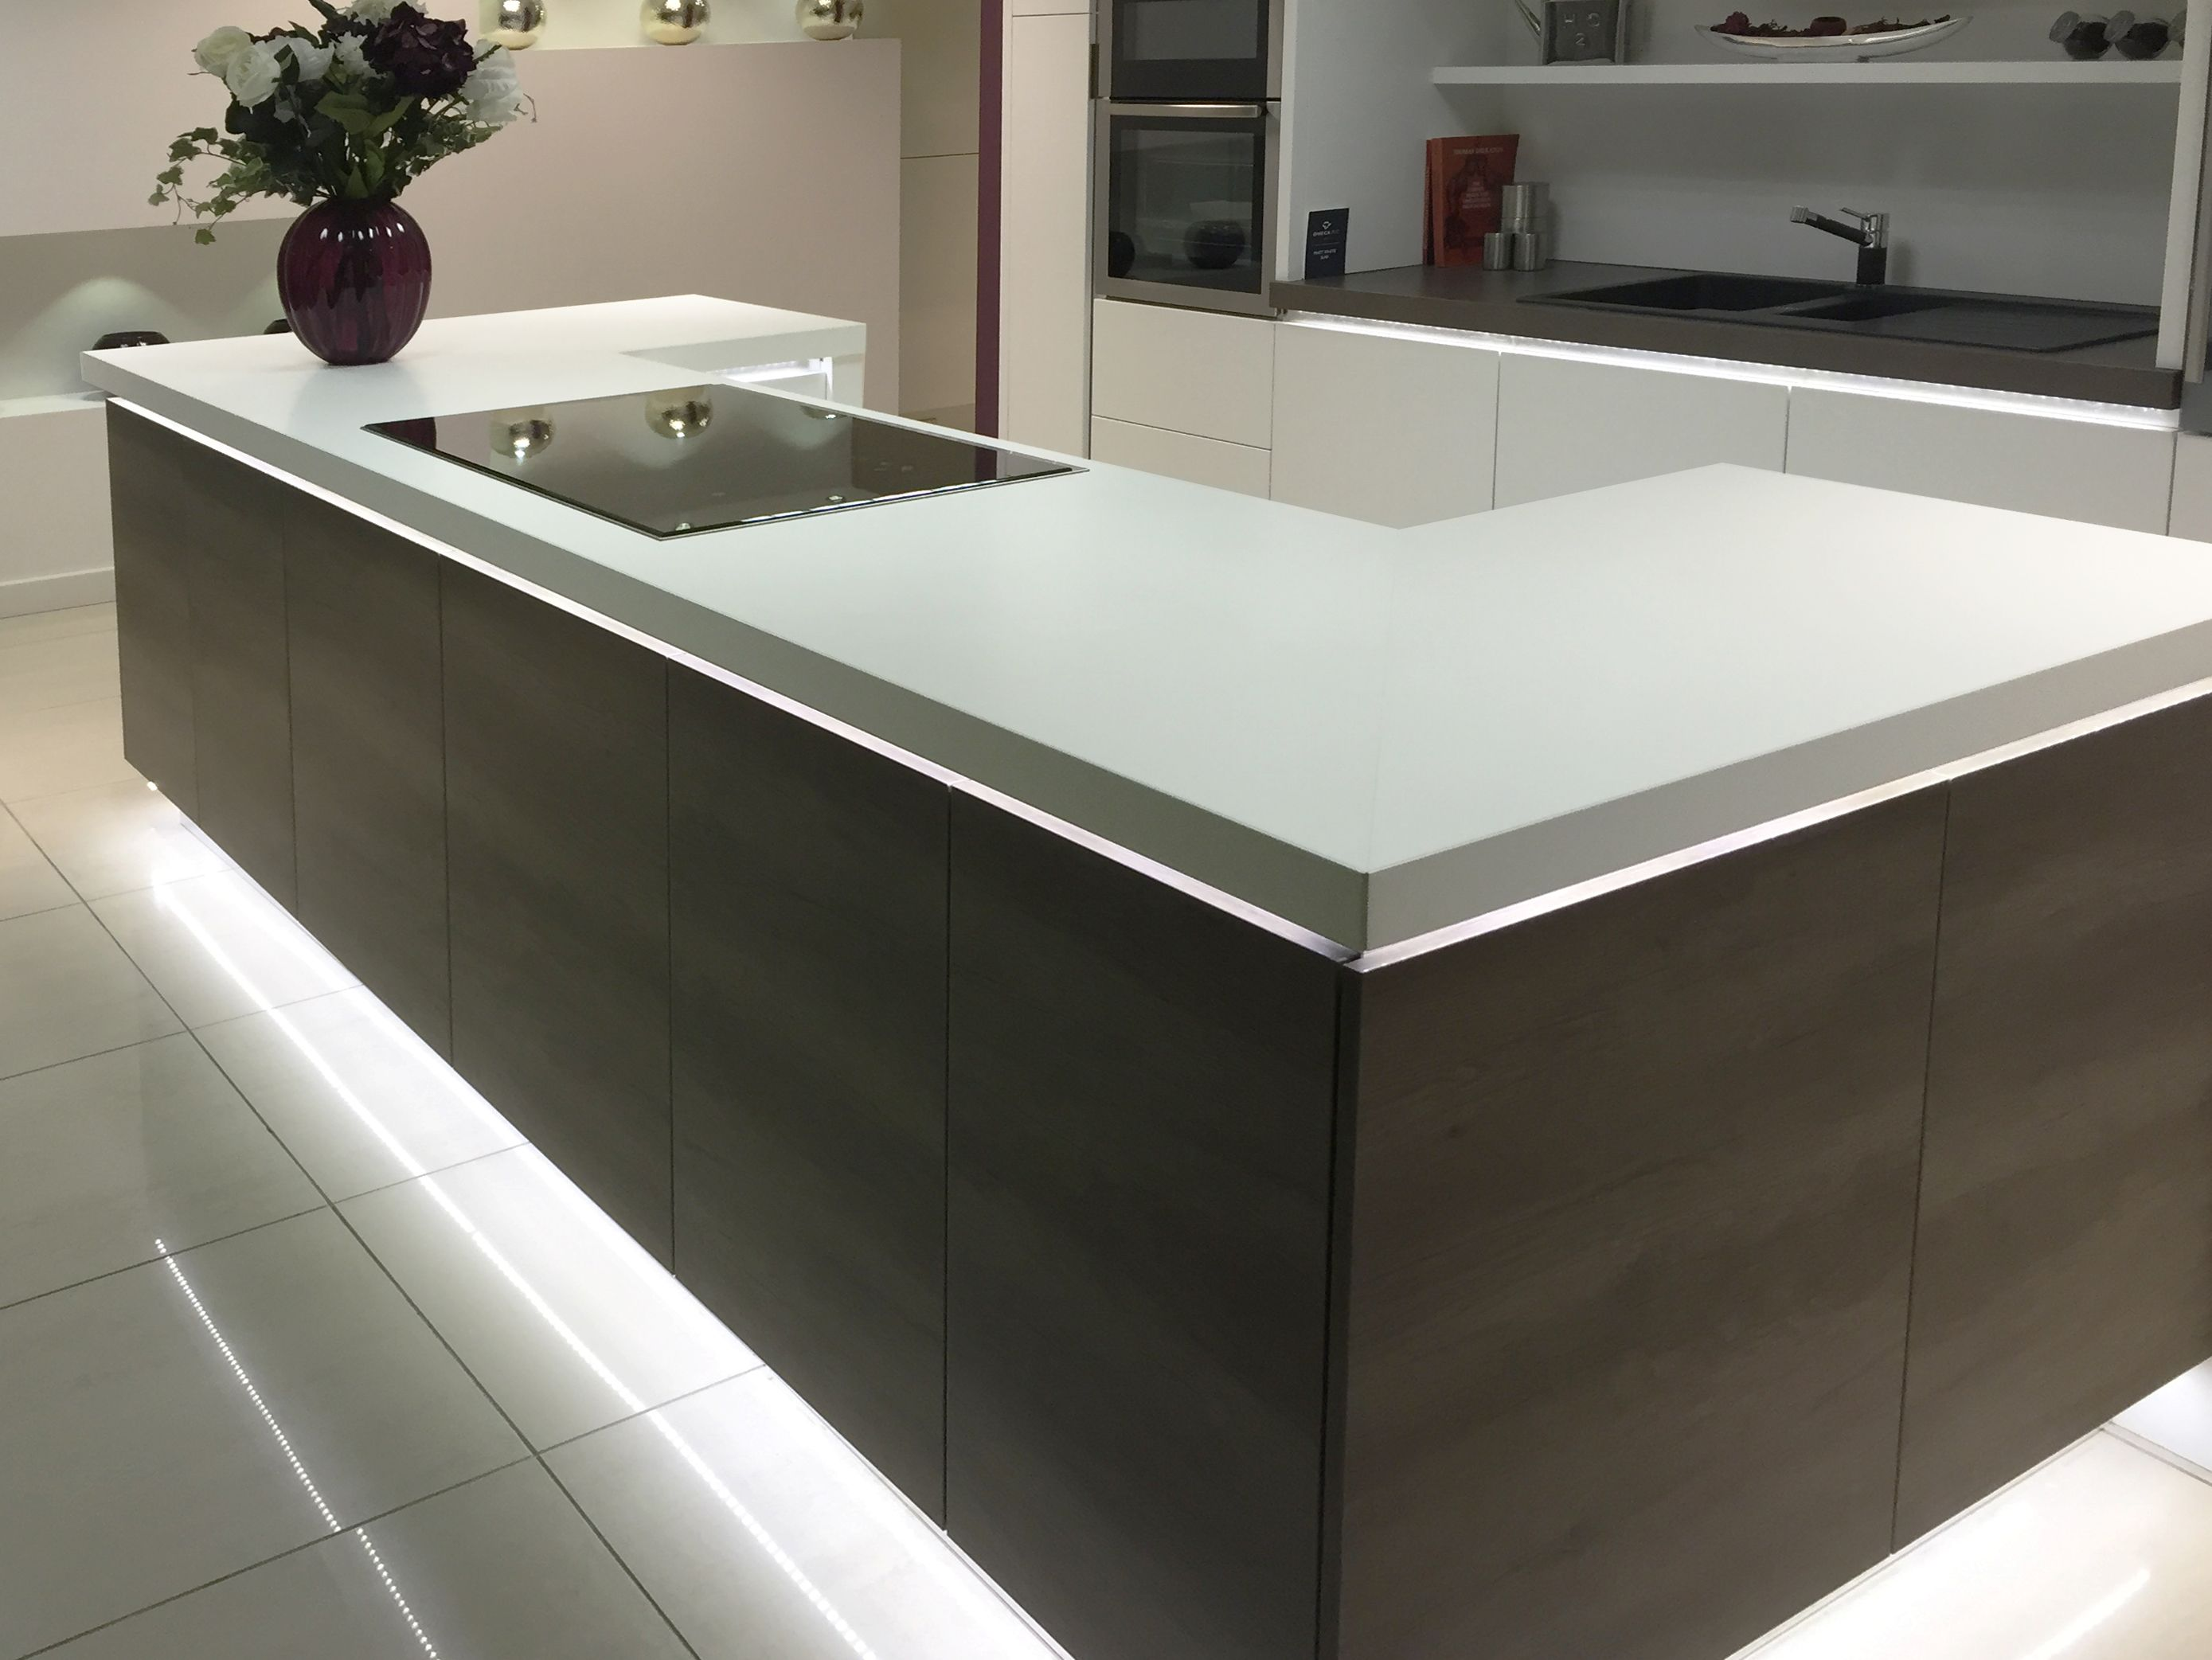 Modern Kitchen Design U Shape Modern Kitchen Island Design In A U Shape With Mirrored